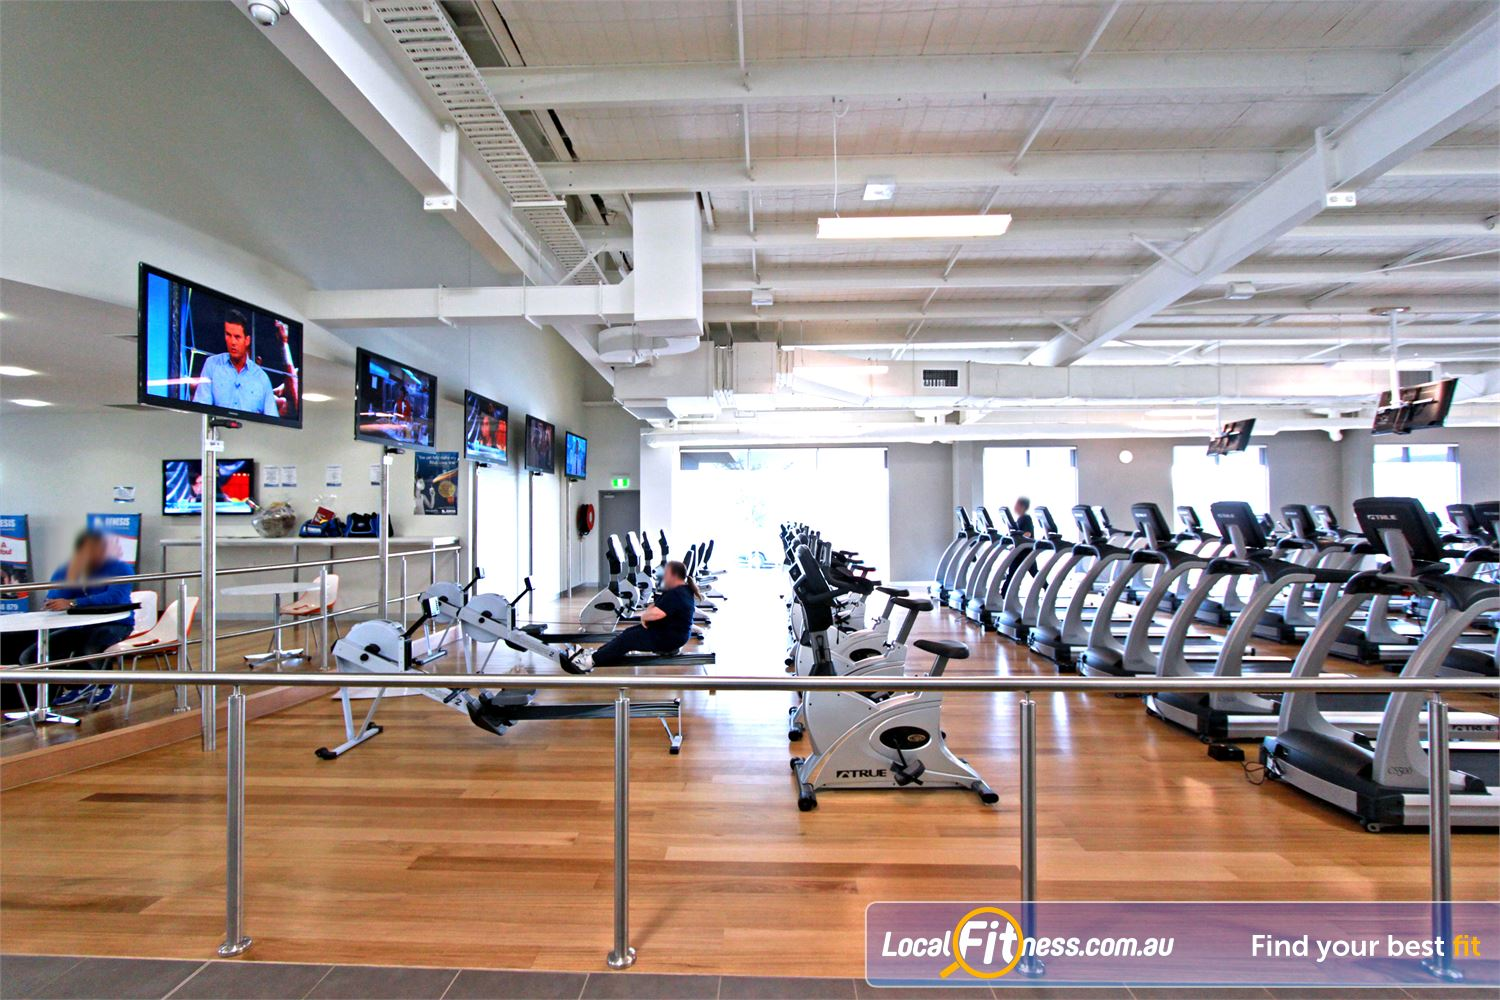 Genesis Fitness Clubs Near Watsonia North Our Bundoora gym has rows of machines so you'll never have to wait.